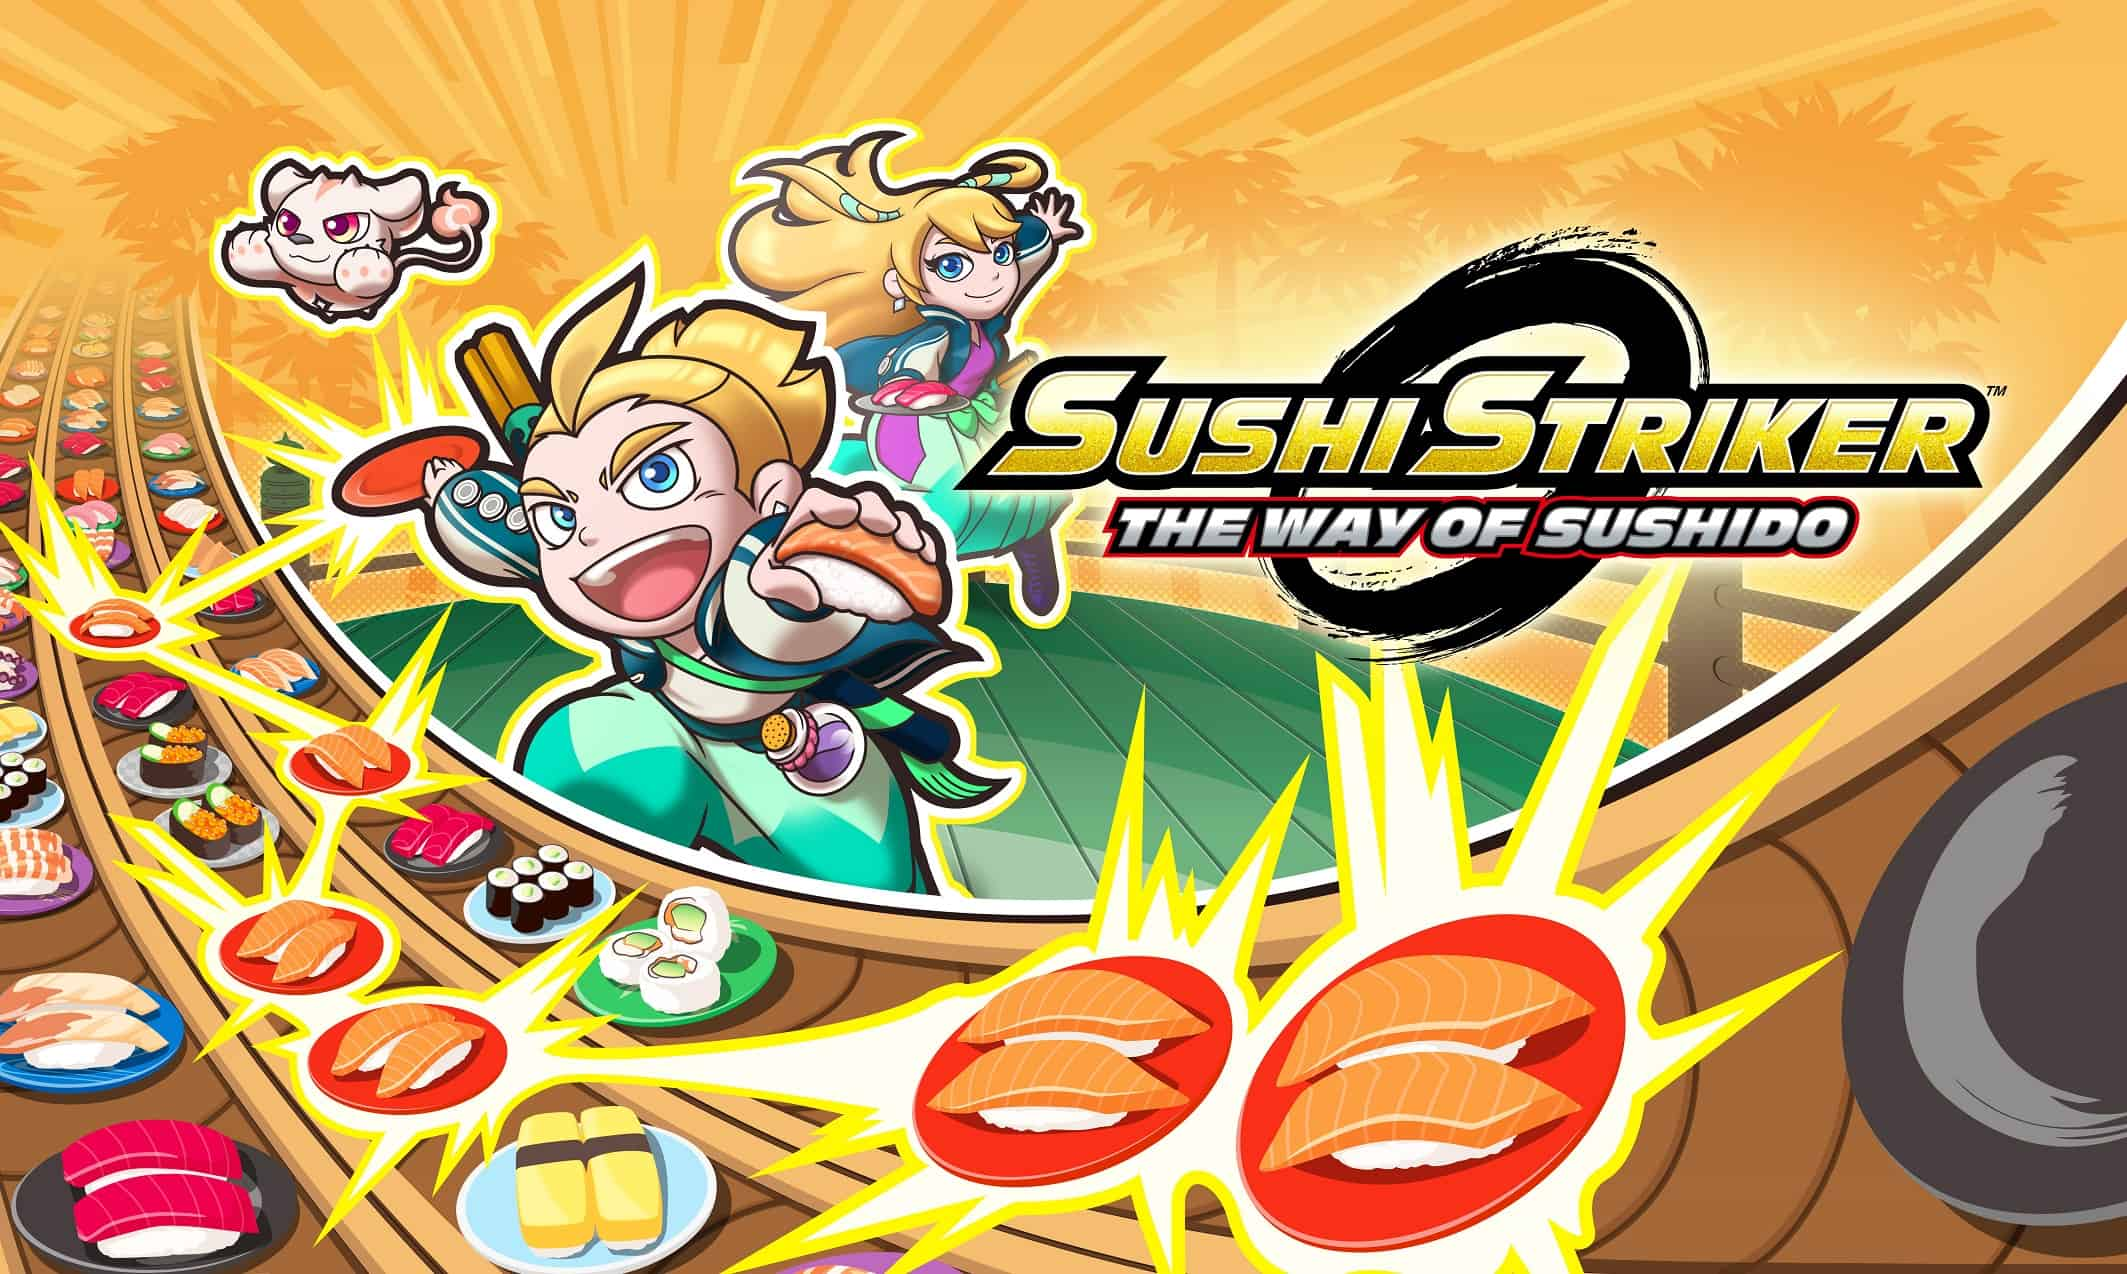 1 Nsw N3ds Sushistriker Illustration Hacp Ala2 Wwillu01 03 R Ad 0